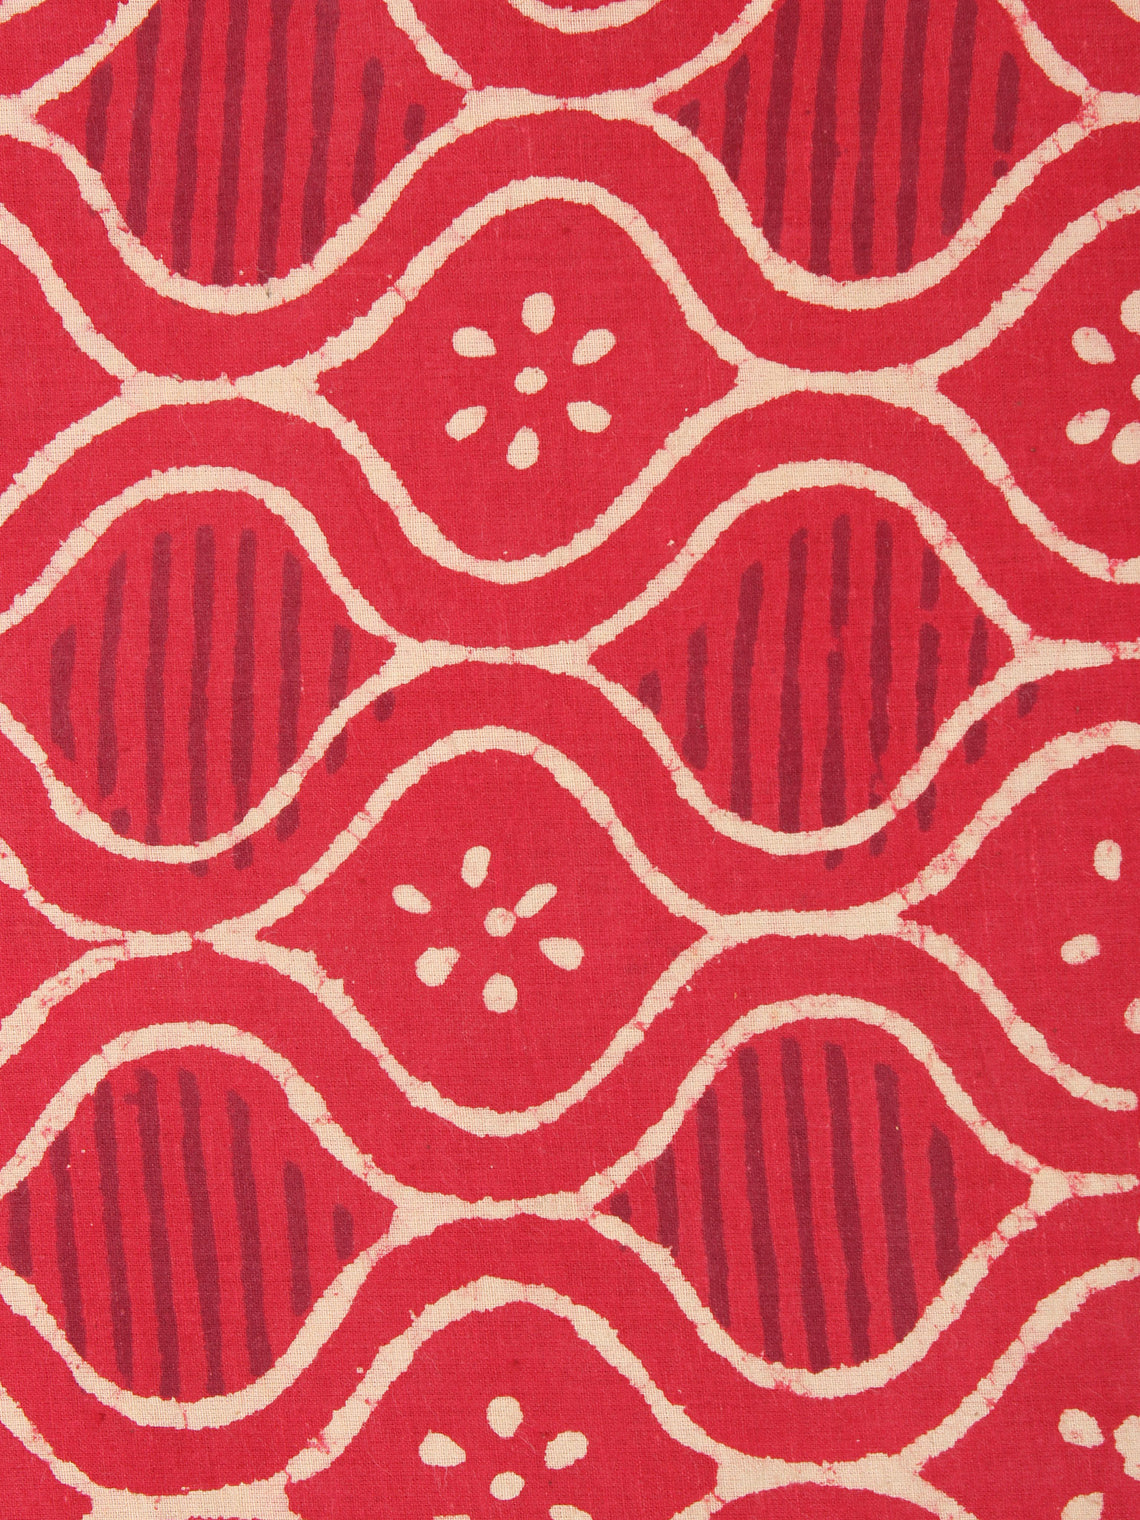 Red With Beige Color Natural Dyed Hand Block Printed Cotton Fabric Per Meter - F0916222